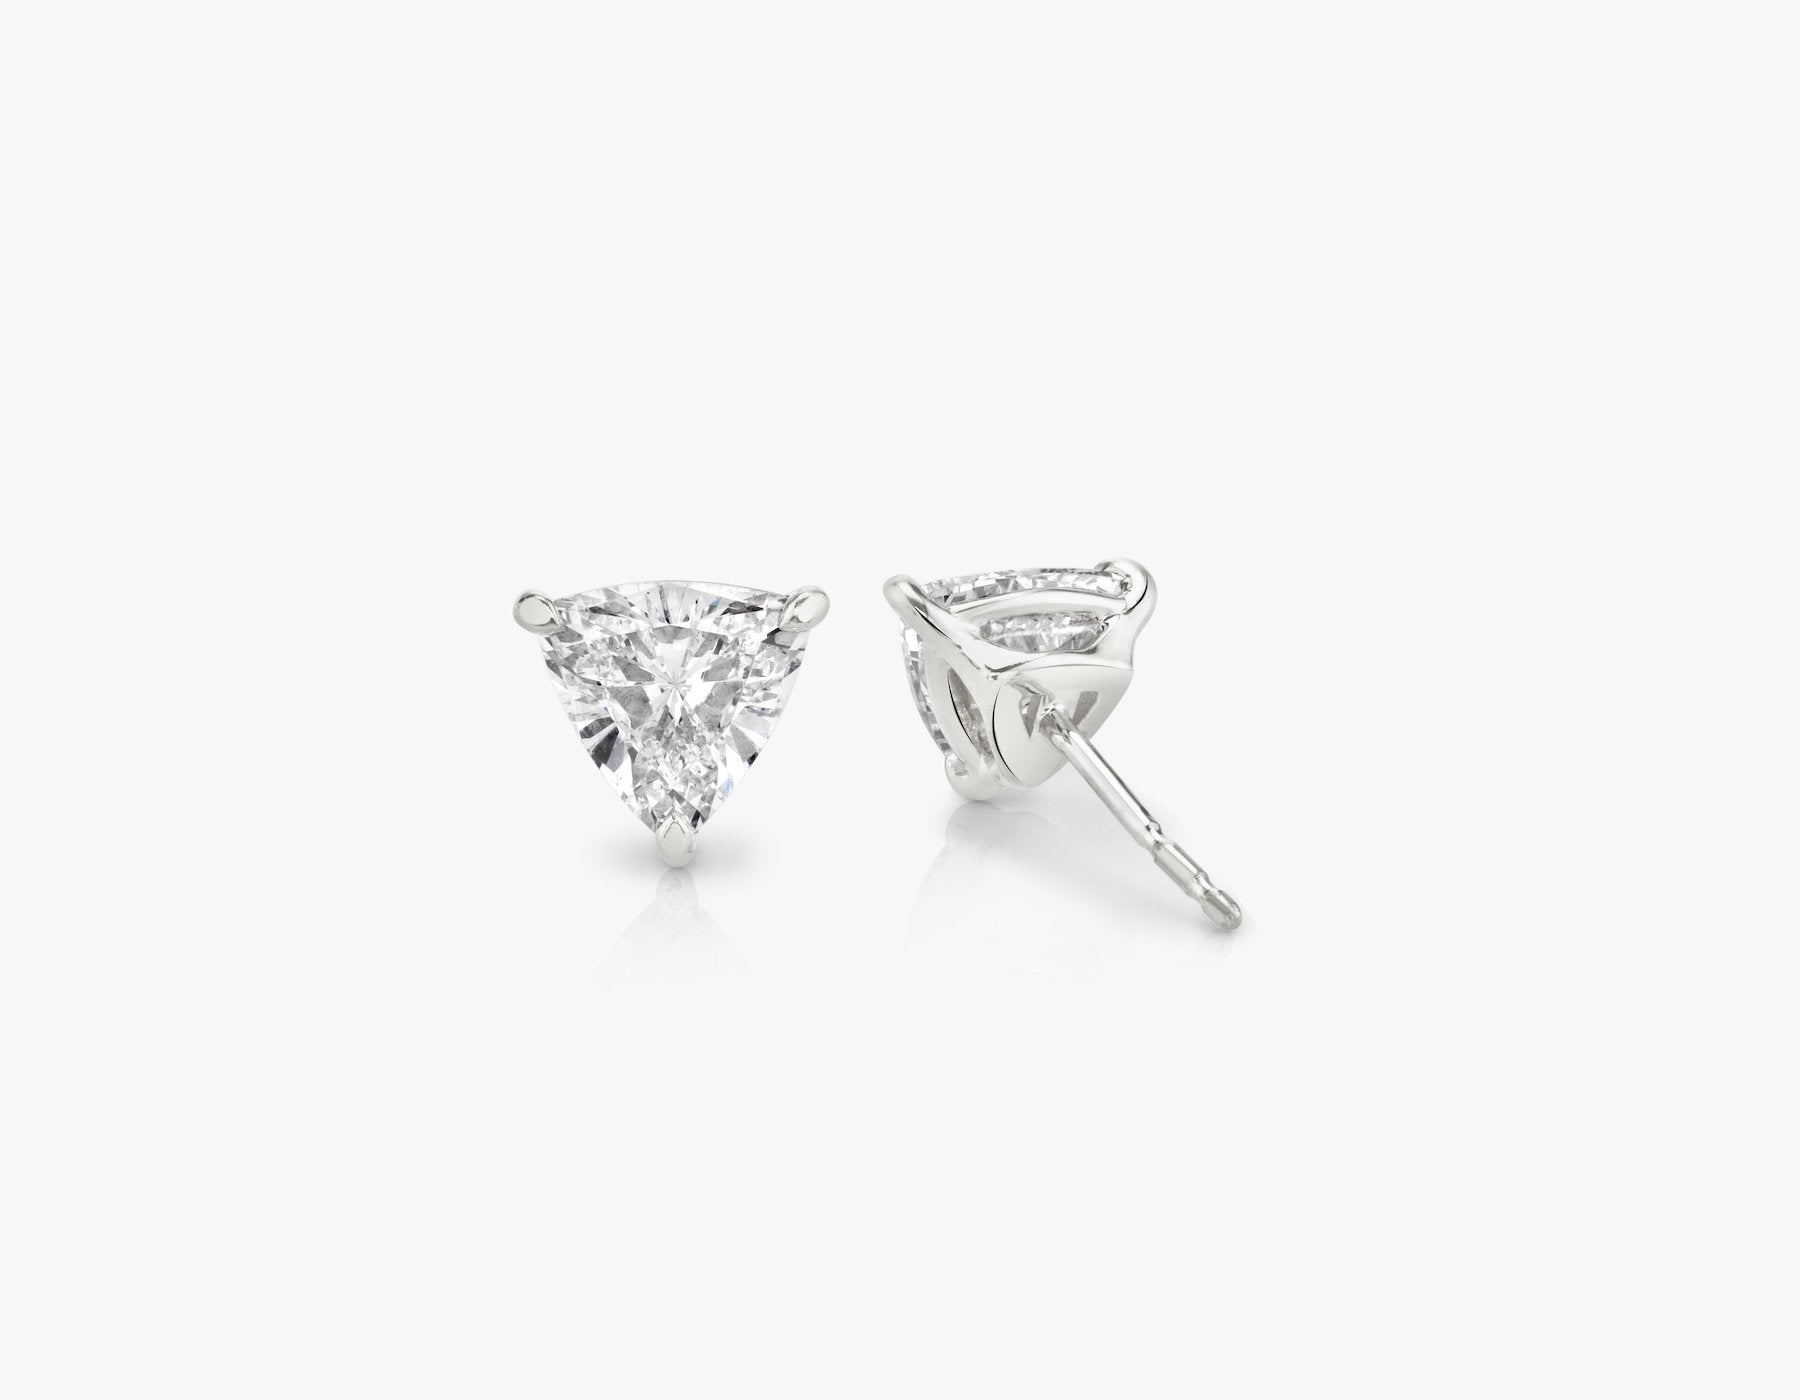 Vrai 14k solid gold Solitaire Trillion Diamond Studs sustainably created triangle diamonds prong set earrings back view, 14K White Gold